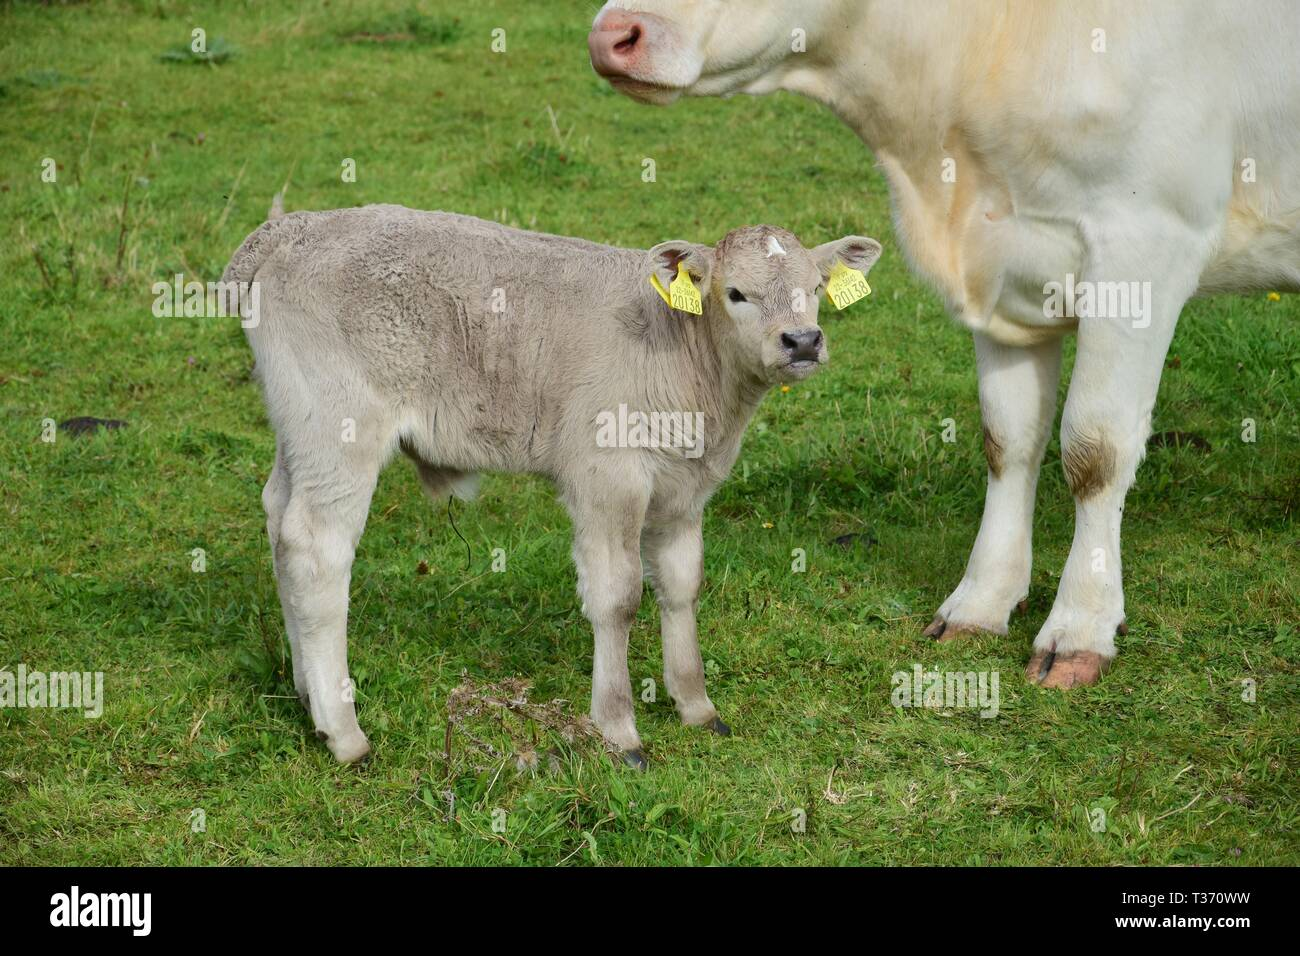 A young calf, a few days old, with its mother on a meadow in Ireland. The dried umbilical cord is still to be seen. - Stock Image